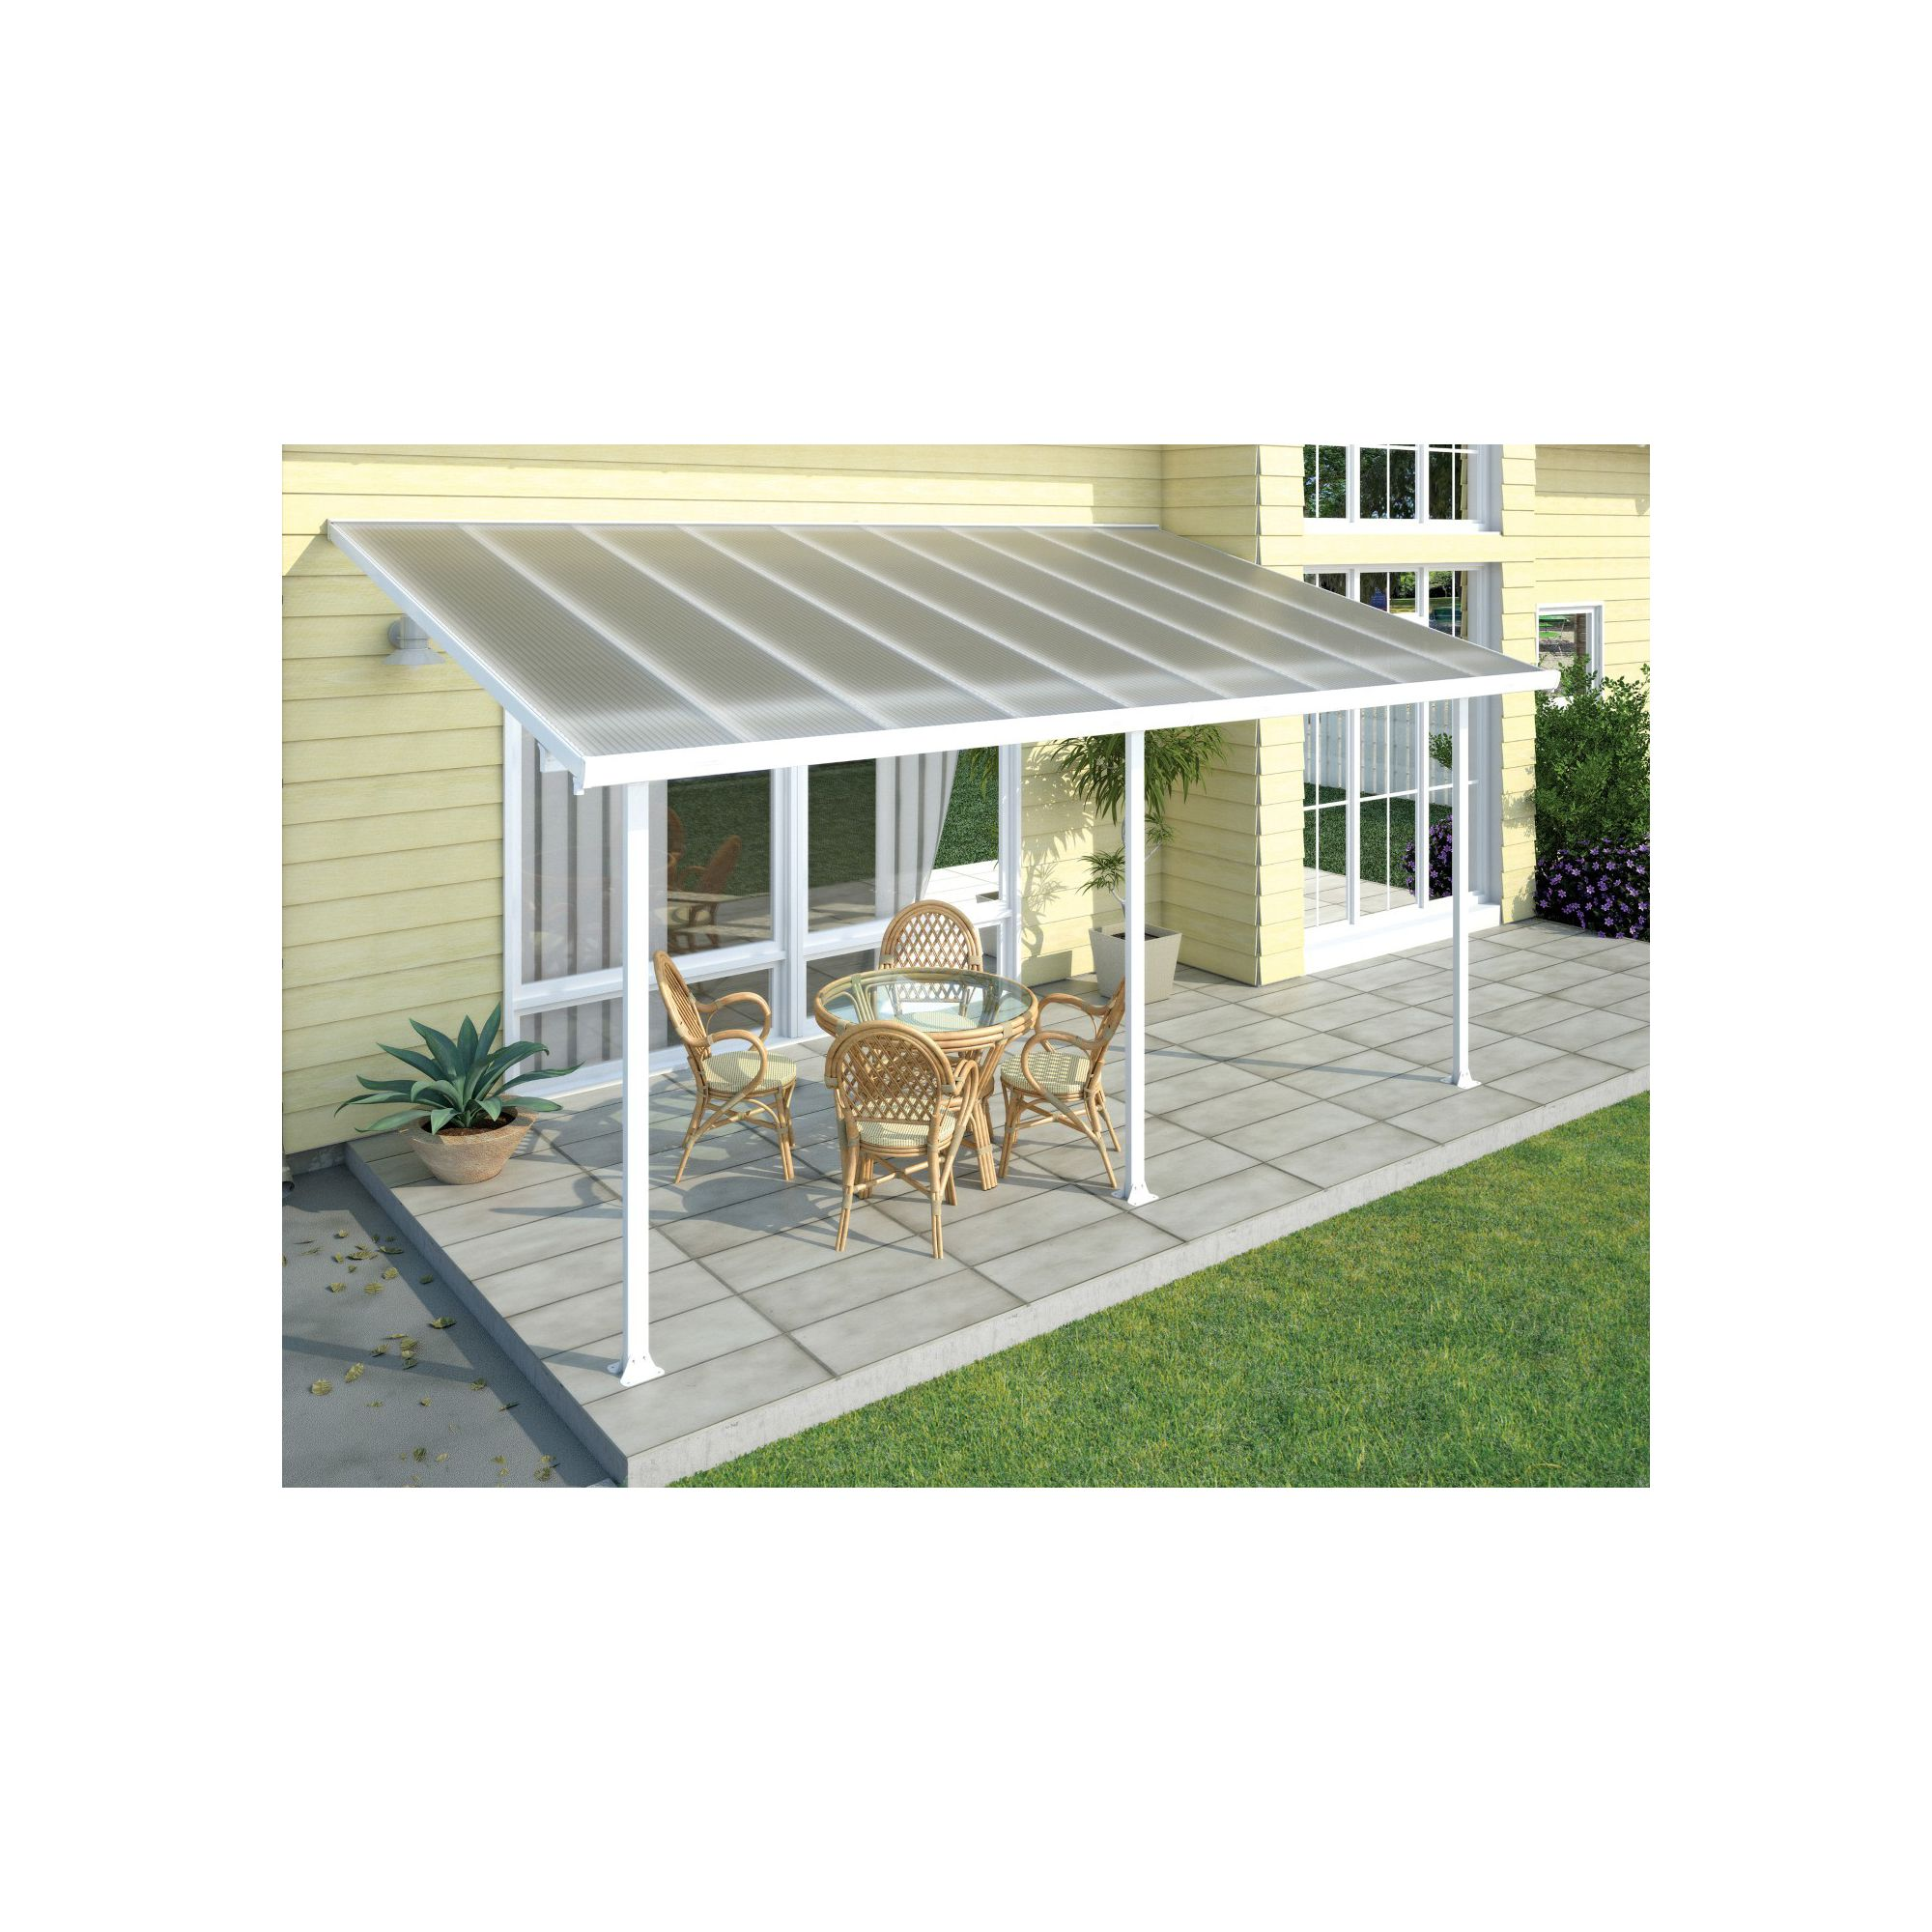 FERIA LEAN TO CARPORT AND PATIO COVER 4X7.87 WHITE at Tesco Direct